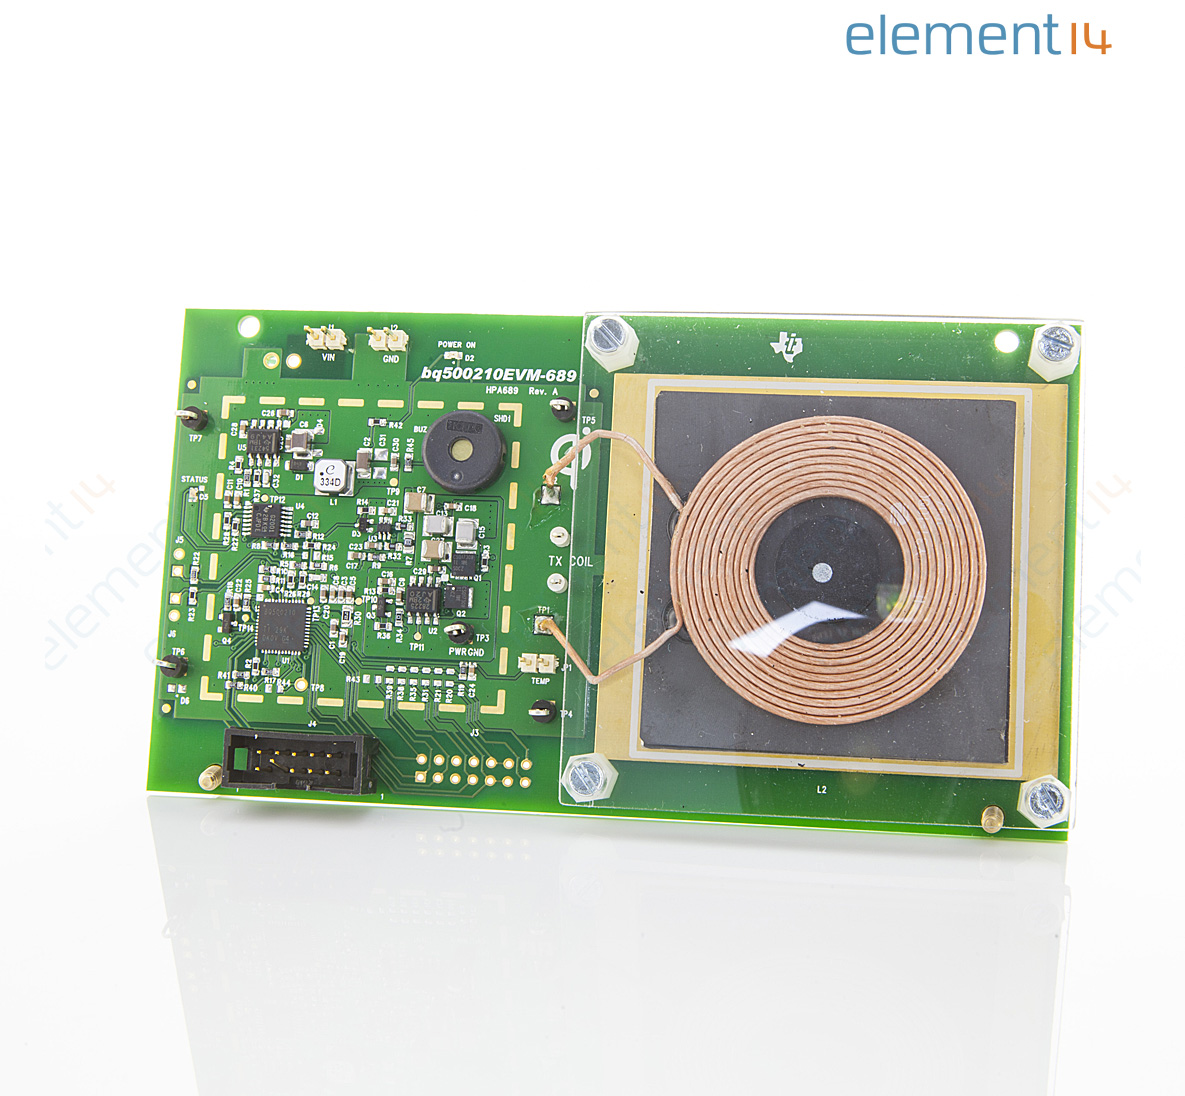 Bq500210evm 689 Texas Instruments Evaluation Module Bq500210 Qi Wireless Power Transmitter Circuit Compliant Manager